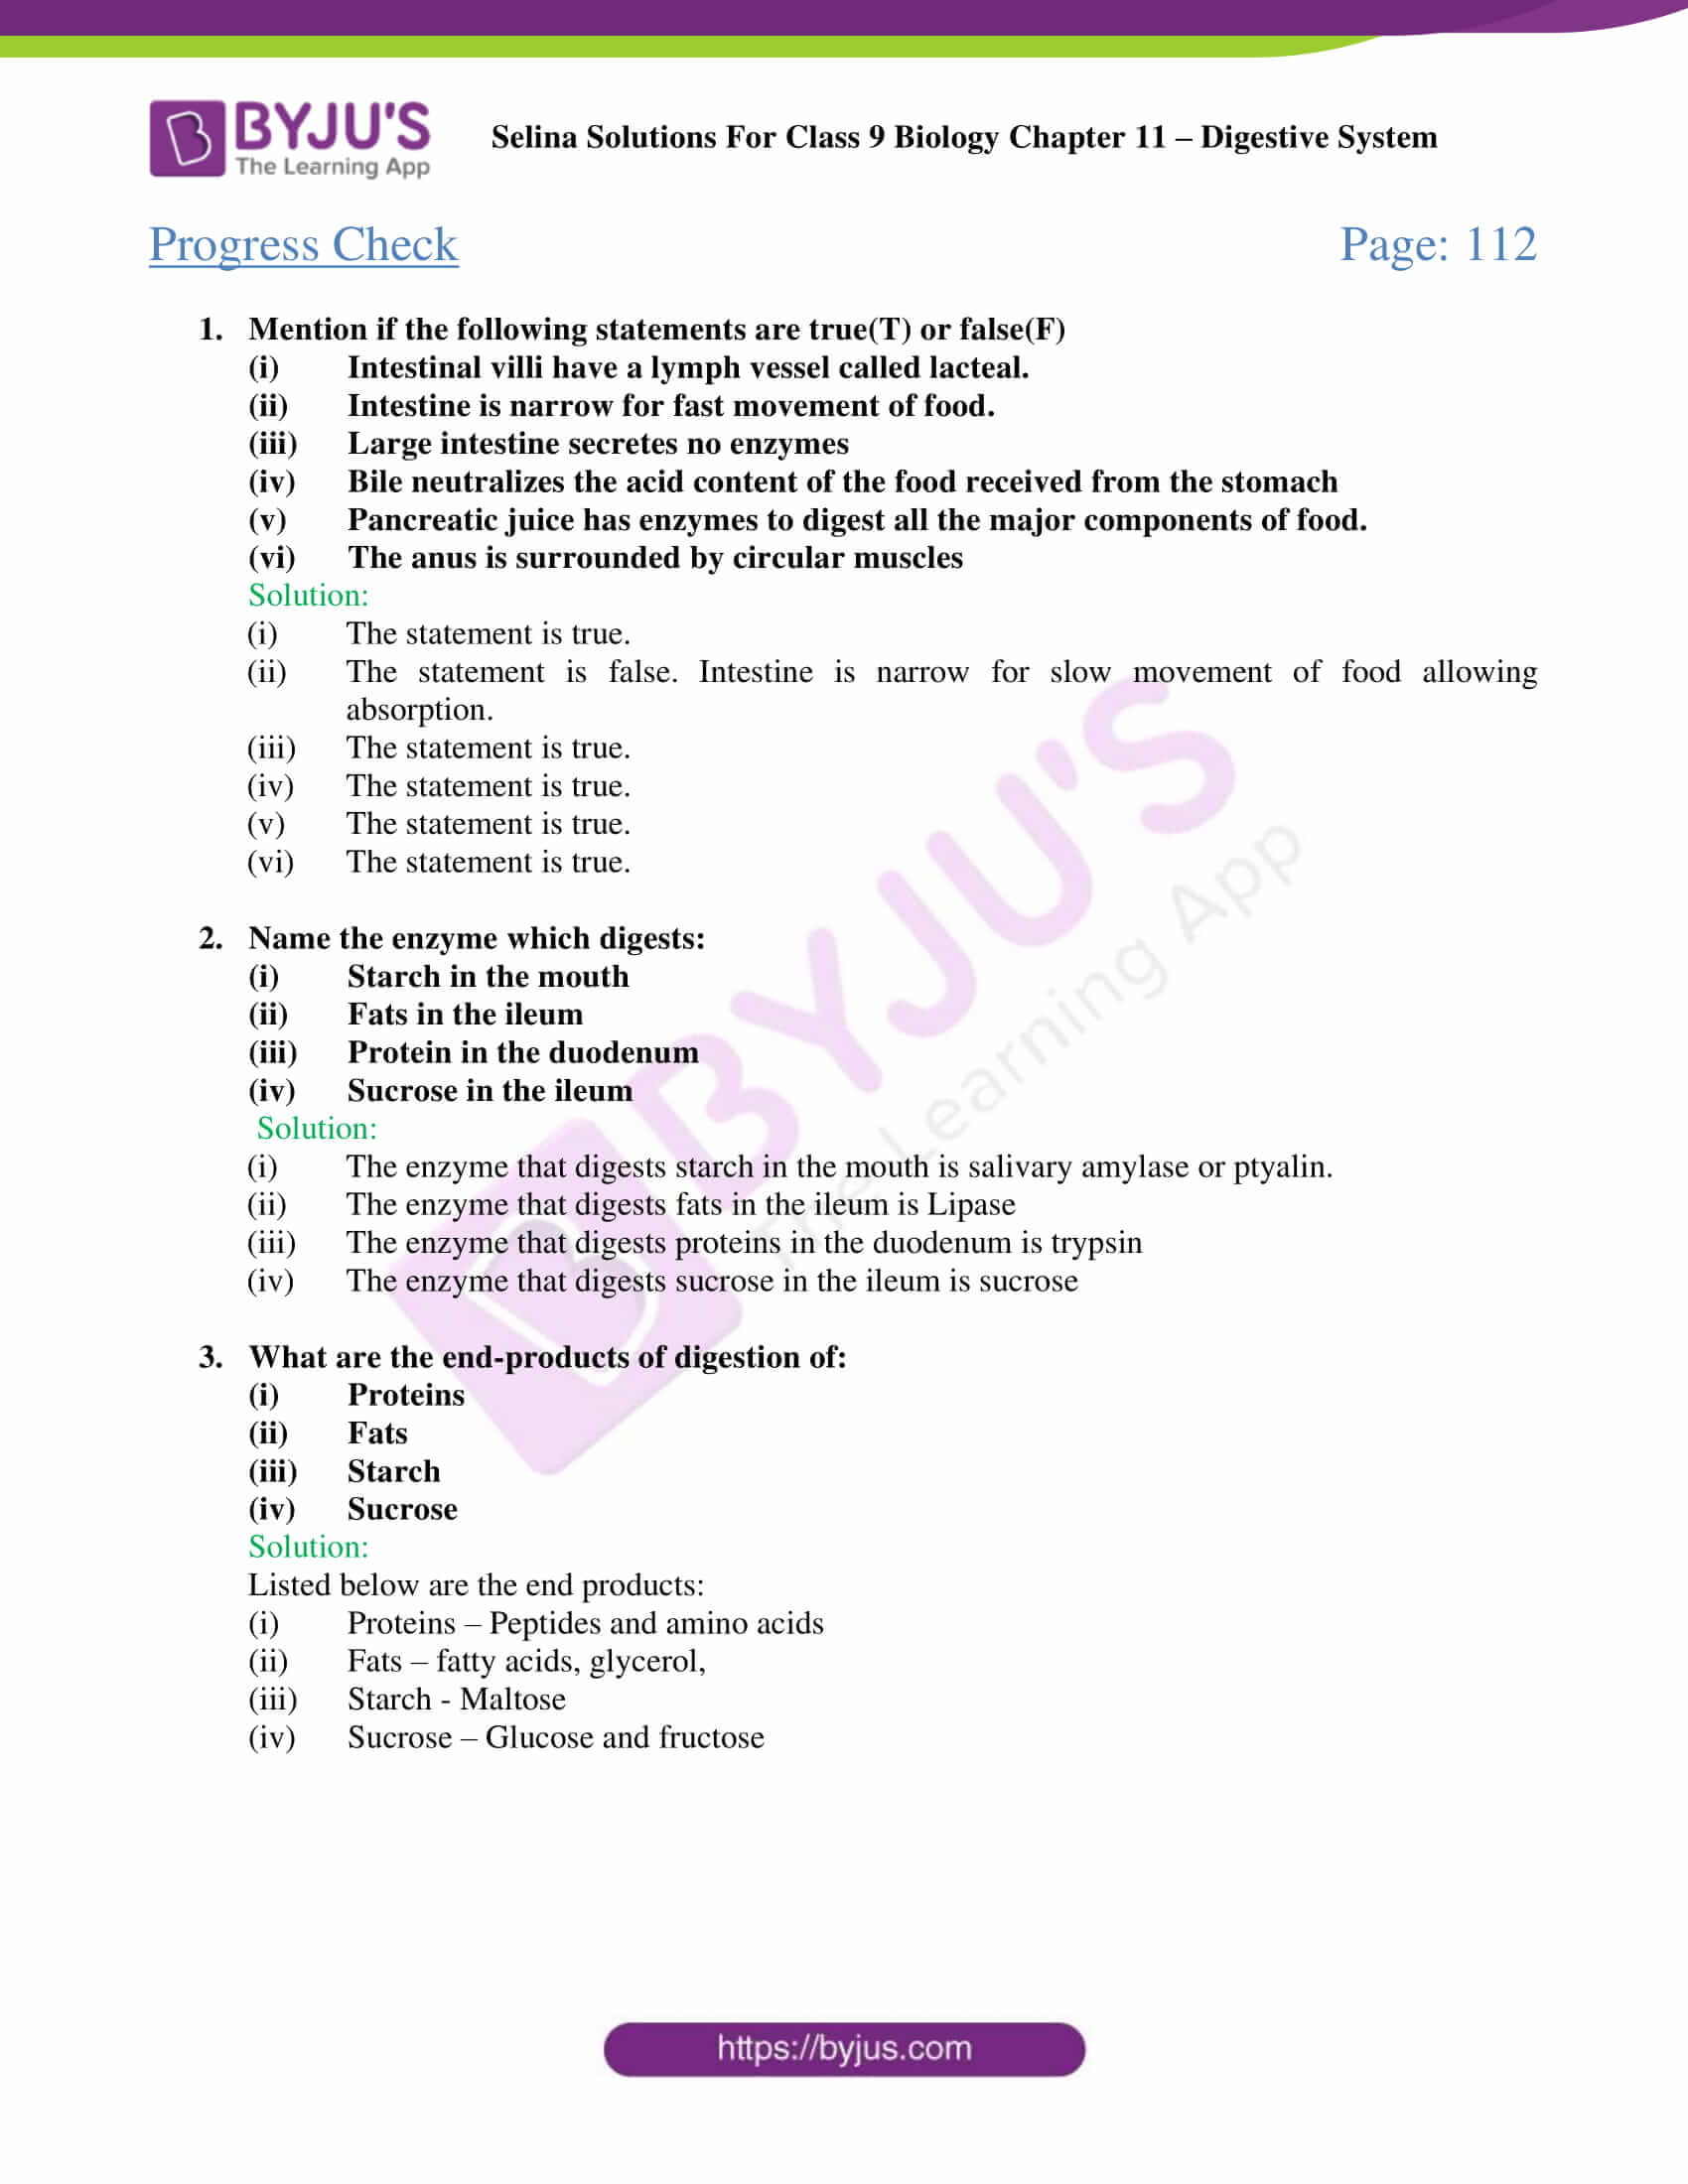 selina Solutions For Class 9 Biology Chapter 11 part 03